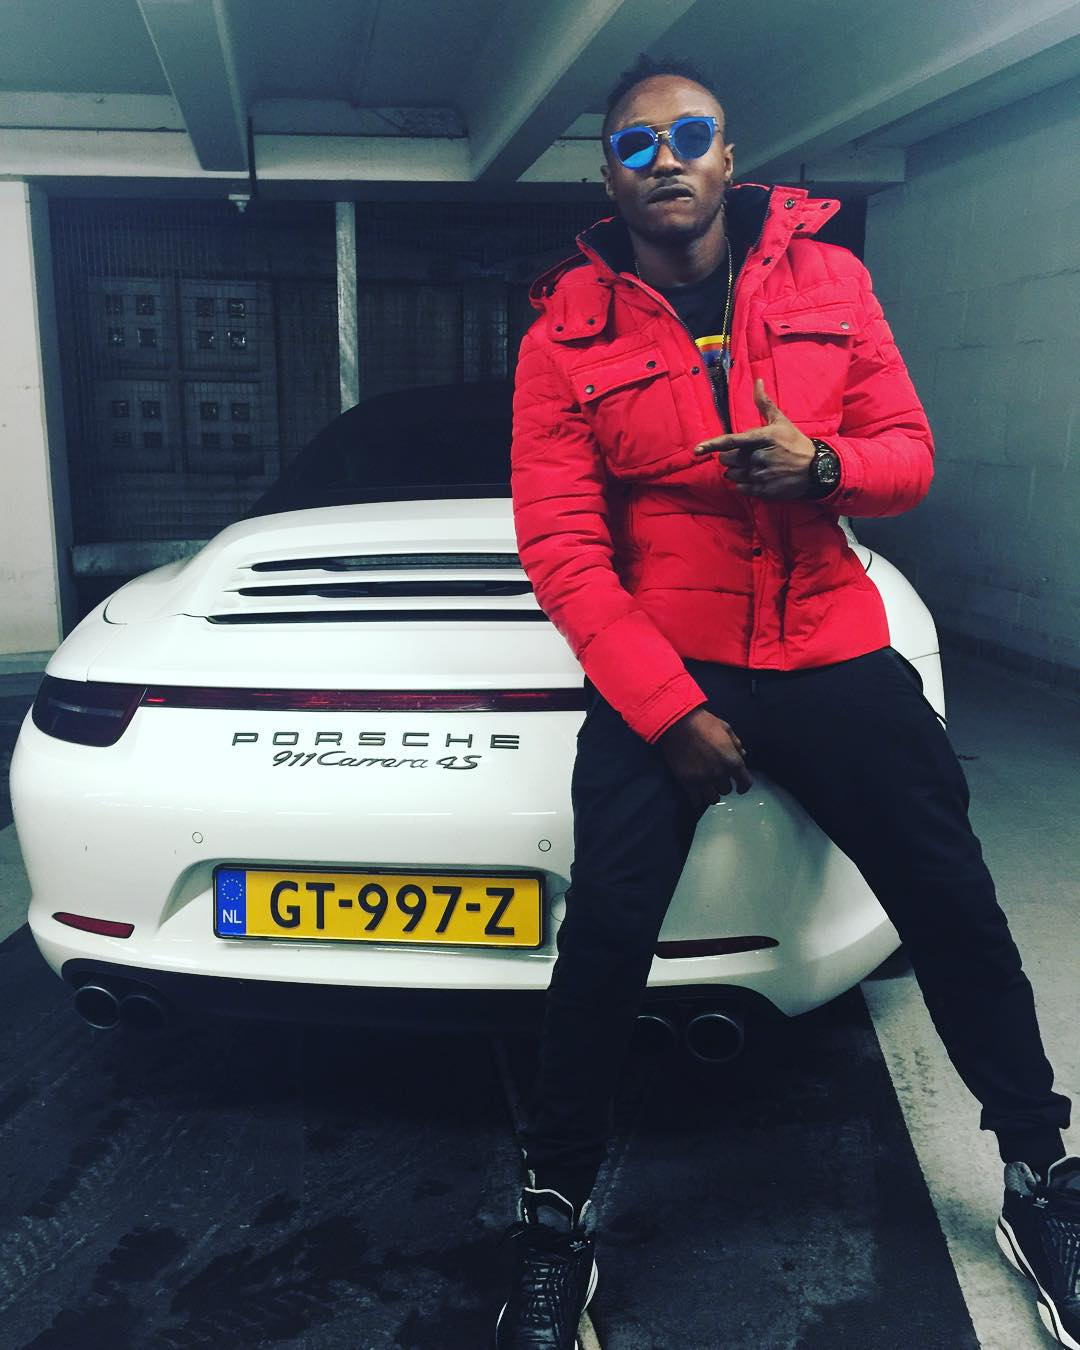 Photo: Terry G Shows Of His Newly Acquired Porsche Car